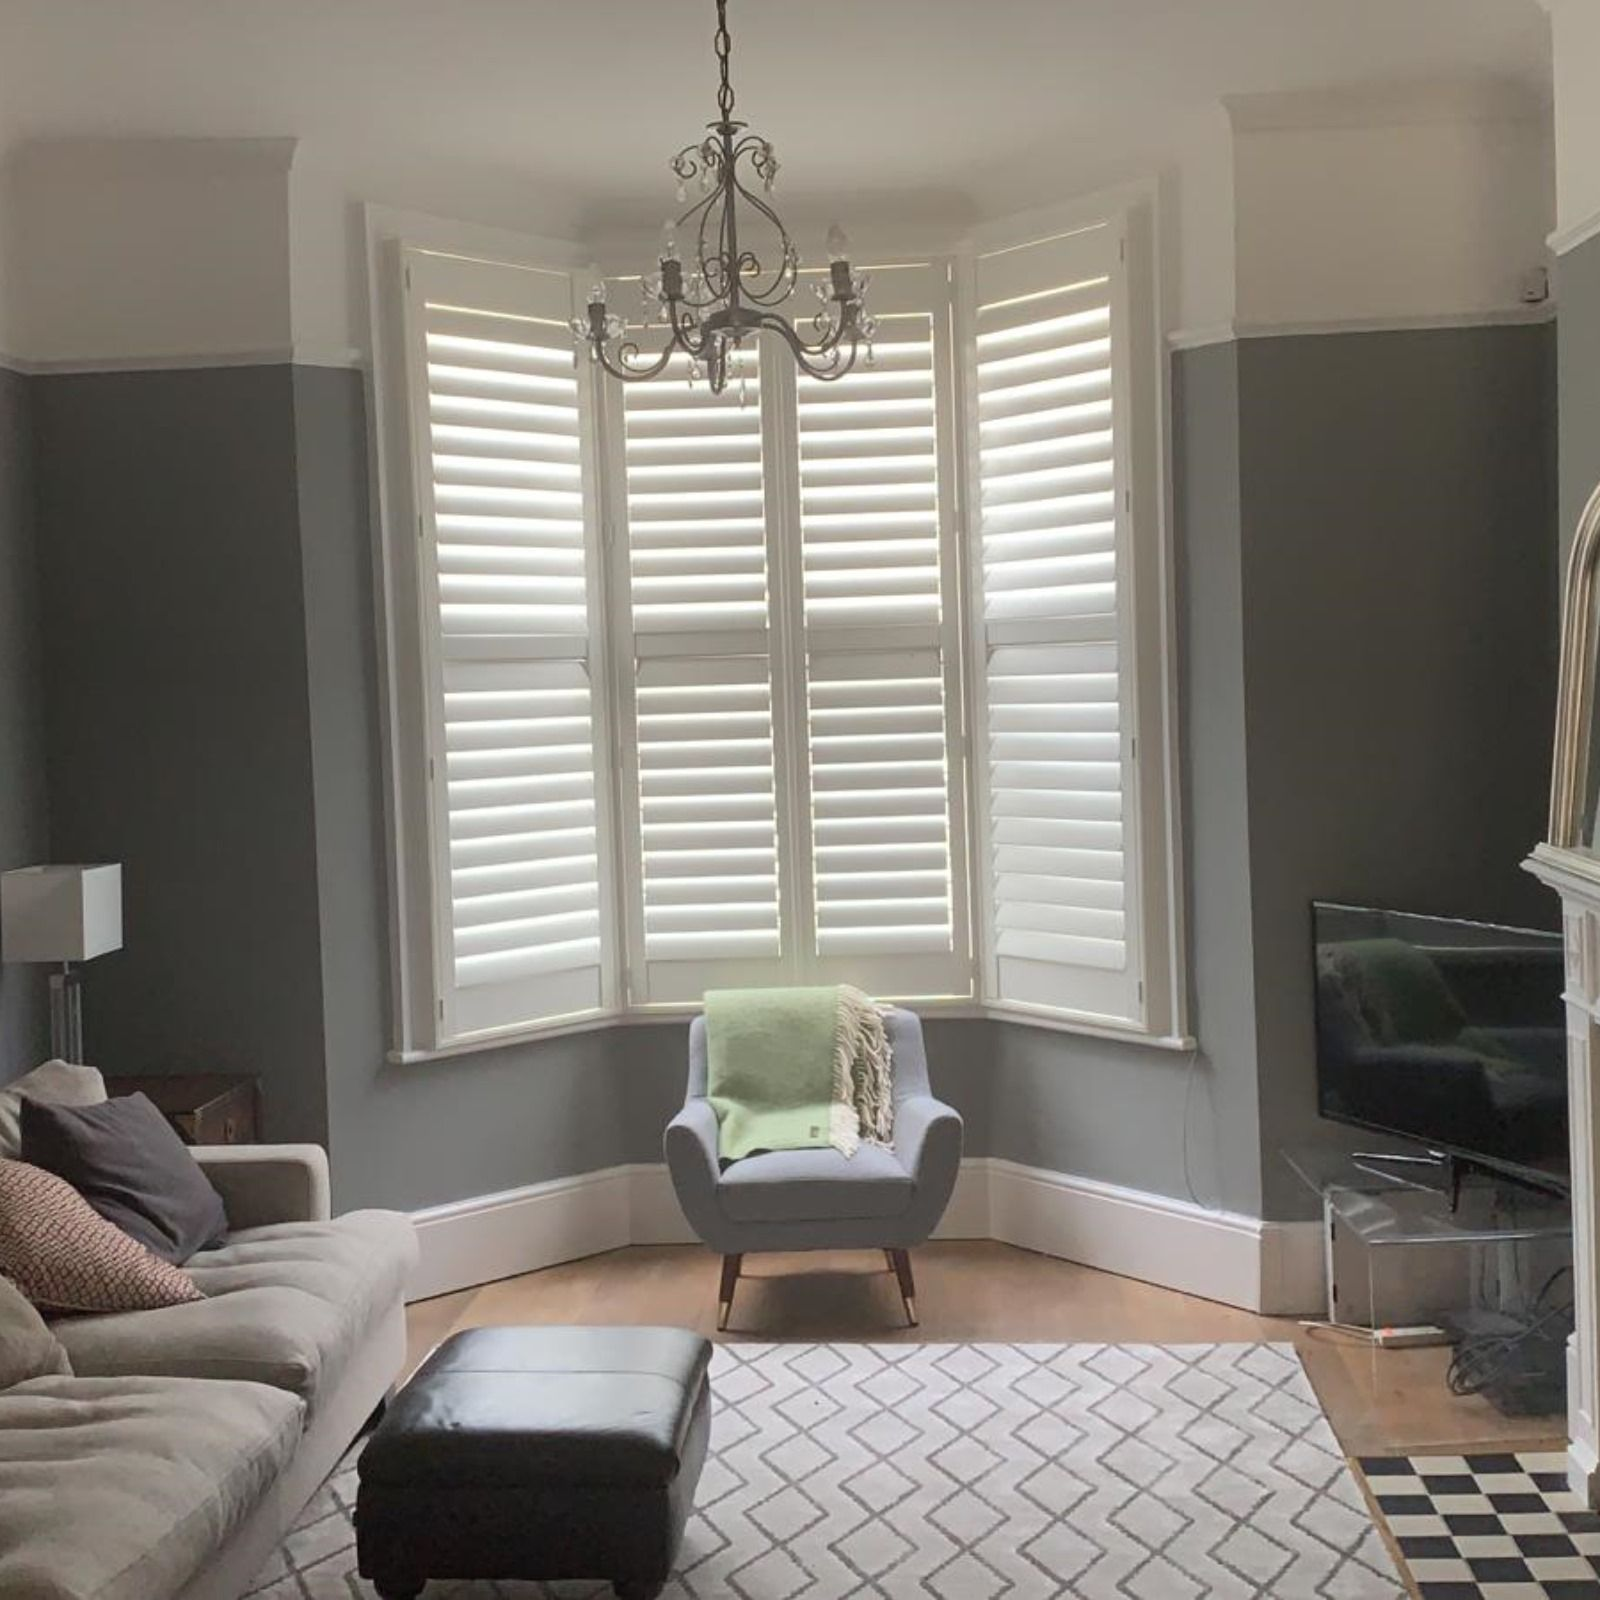 This typical Victorian sash bay window was completed with